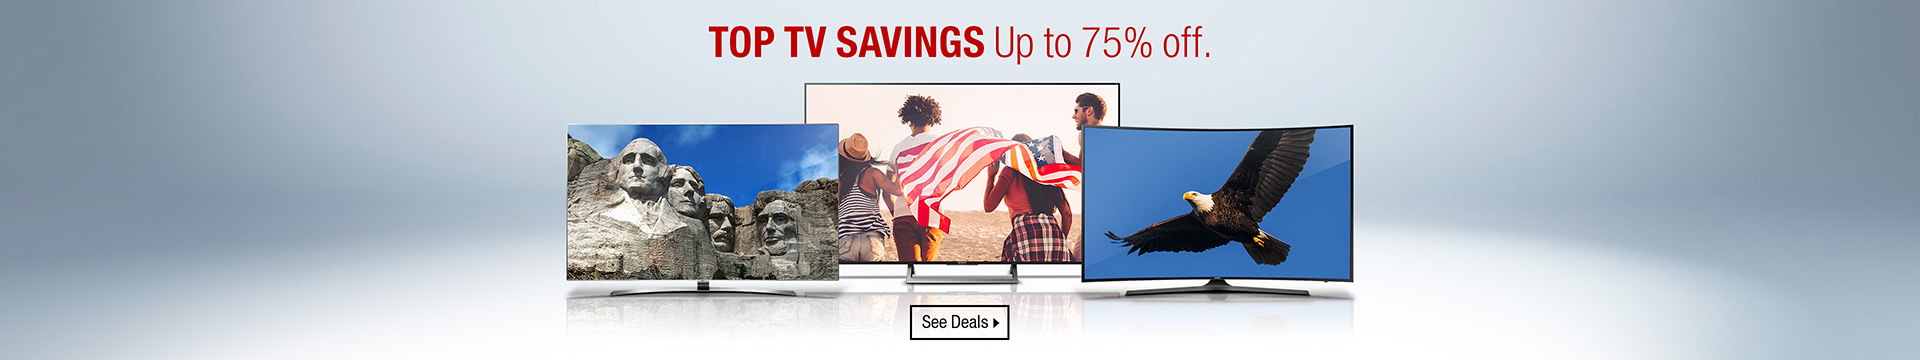 Top TV savings up to 75% off